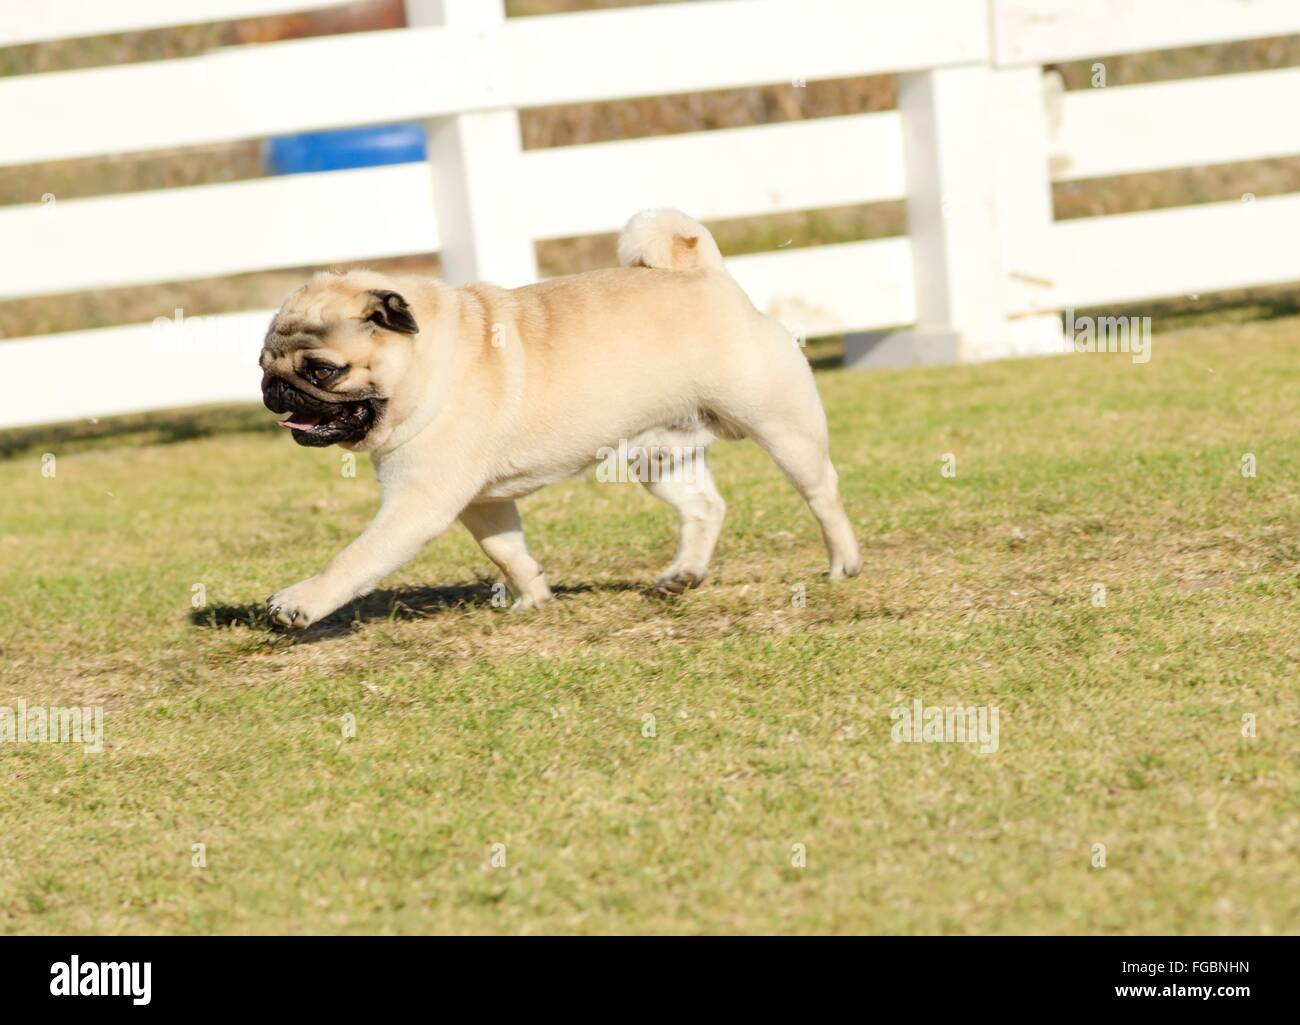 A small, young, beautiful, fawn Pug with a wrinkly short muzzled face running on the lawn looking playful and cheerful. - Stock Image